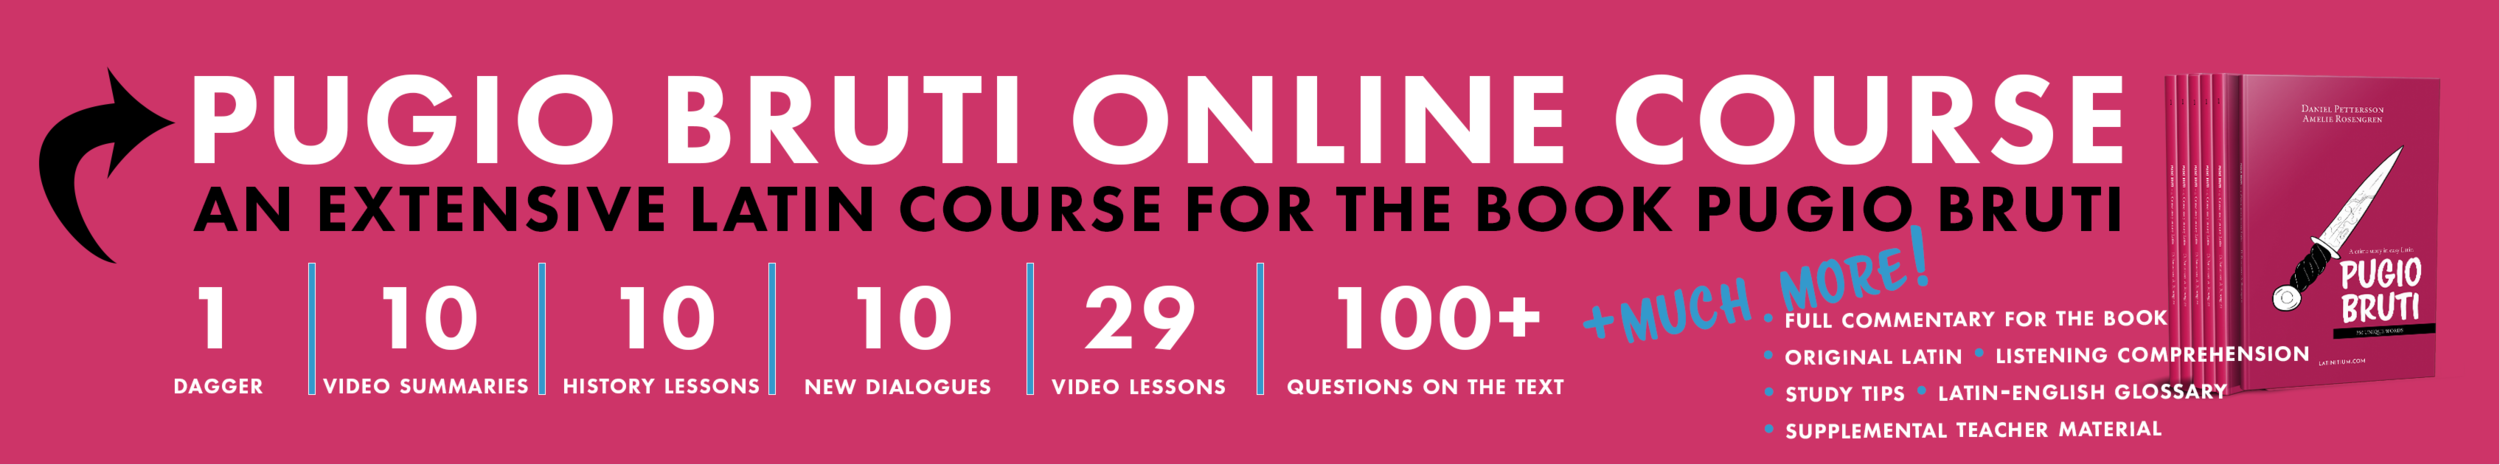 Learn Latin with the online Pugio Bruti course.